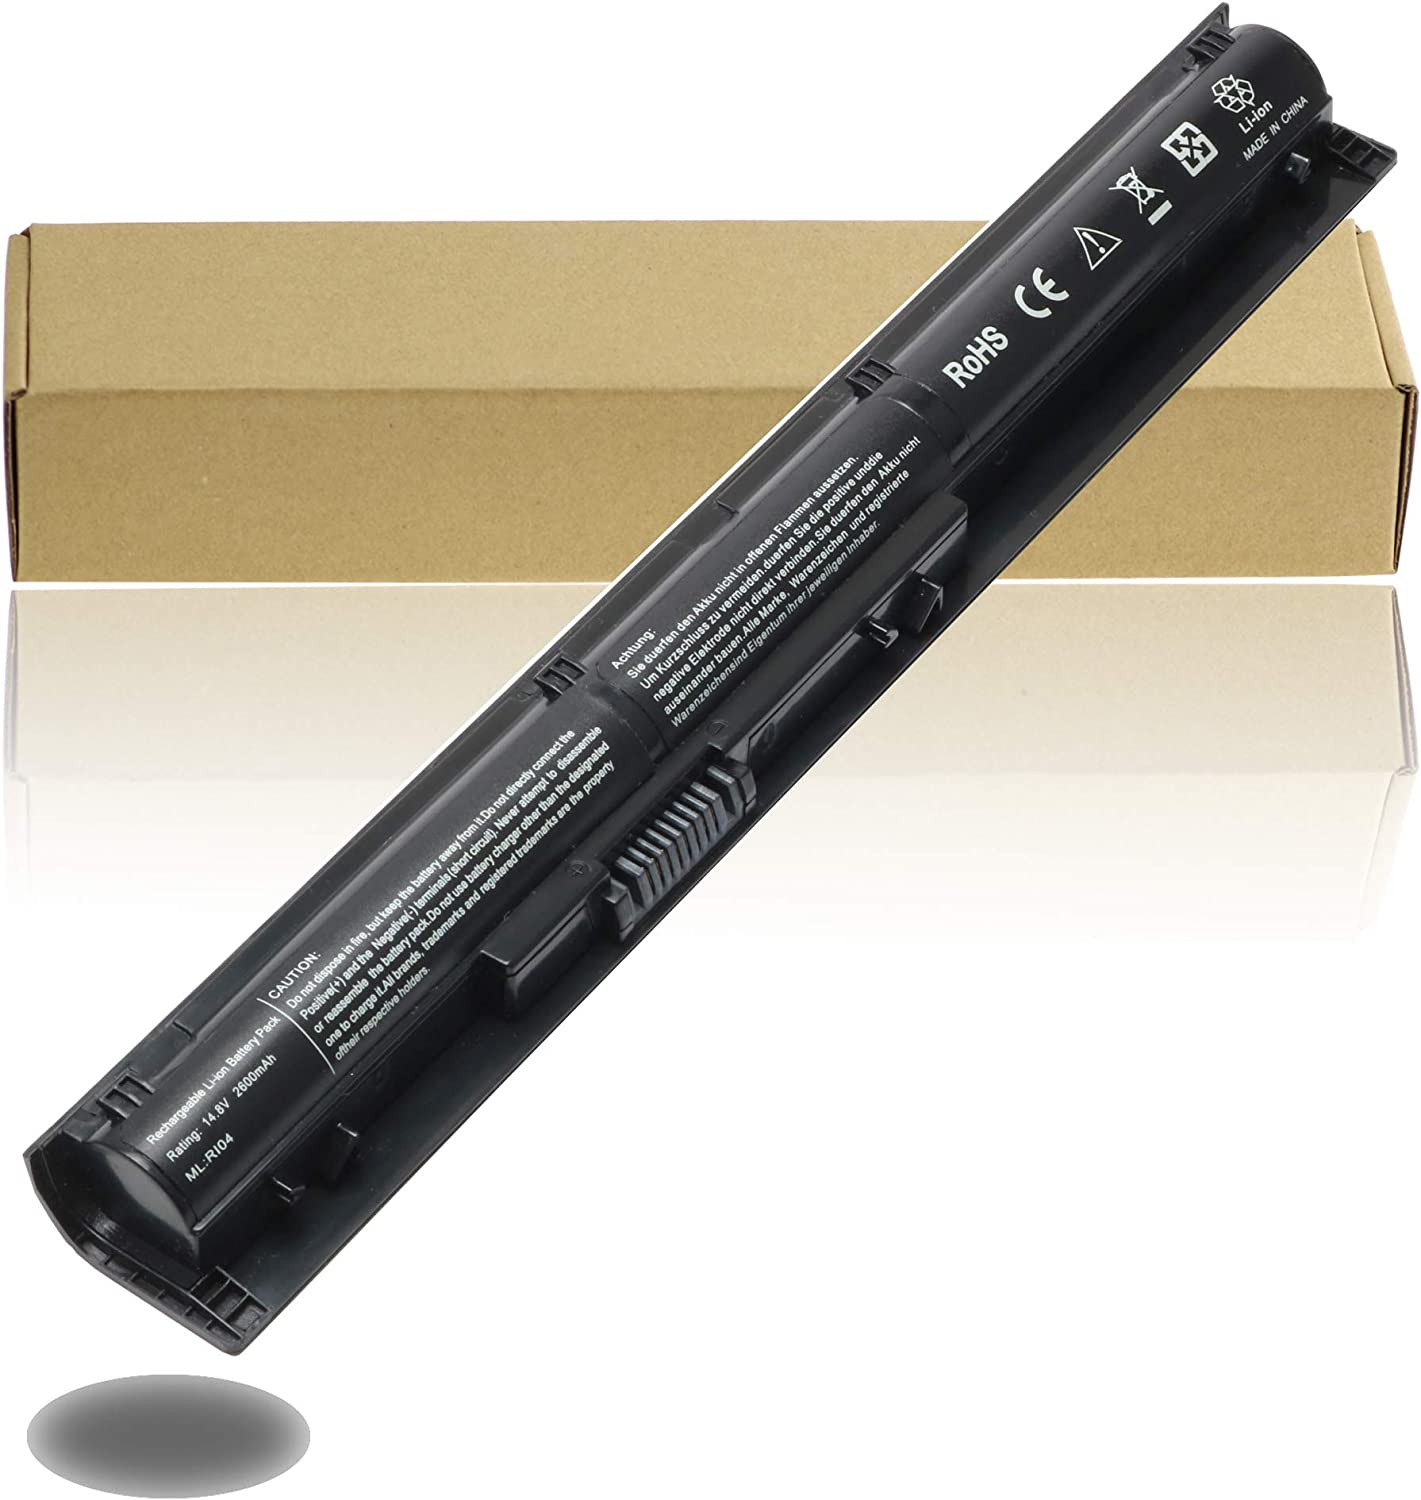 RI04 RI06XL Laptop Battery for HP 805294-001 811063-421 805047-851 P3G15AA HSTNN-DB7B HSTNN-PB6Q; ProBook 450 455 470 G3 Envy 15-Q001TX Series Notebook Batteries